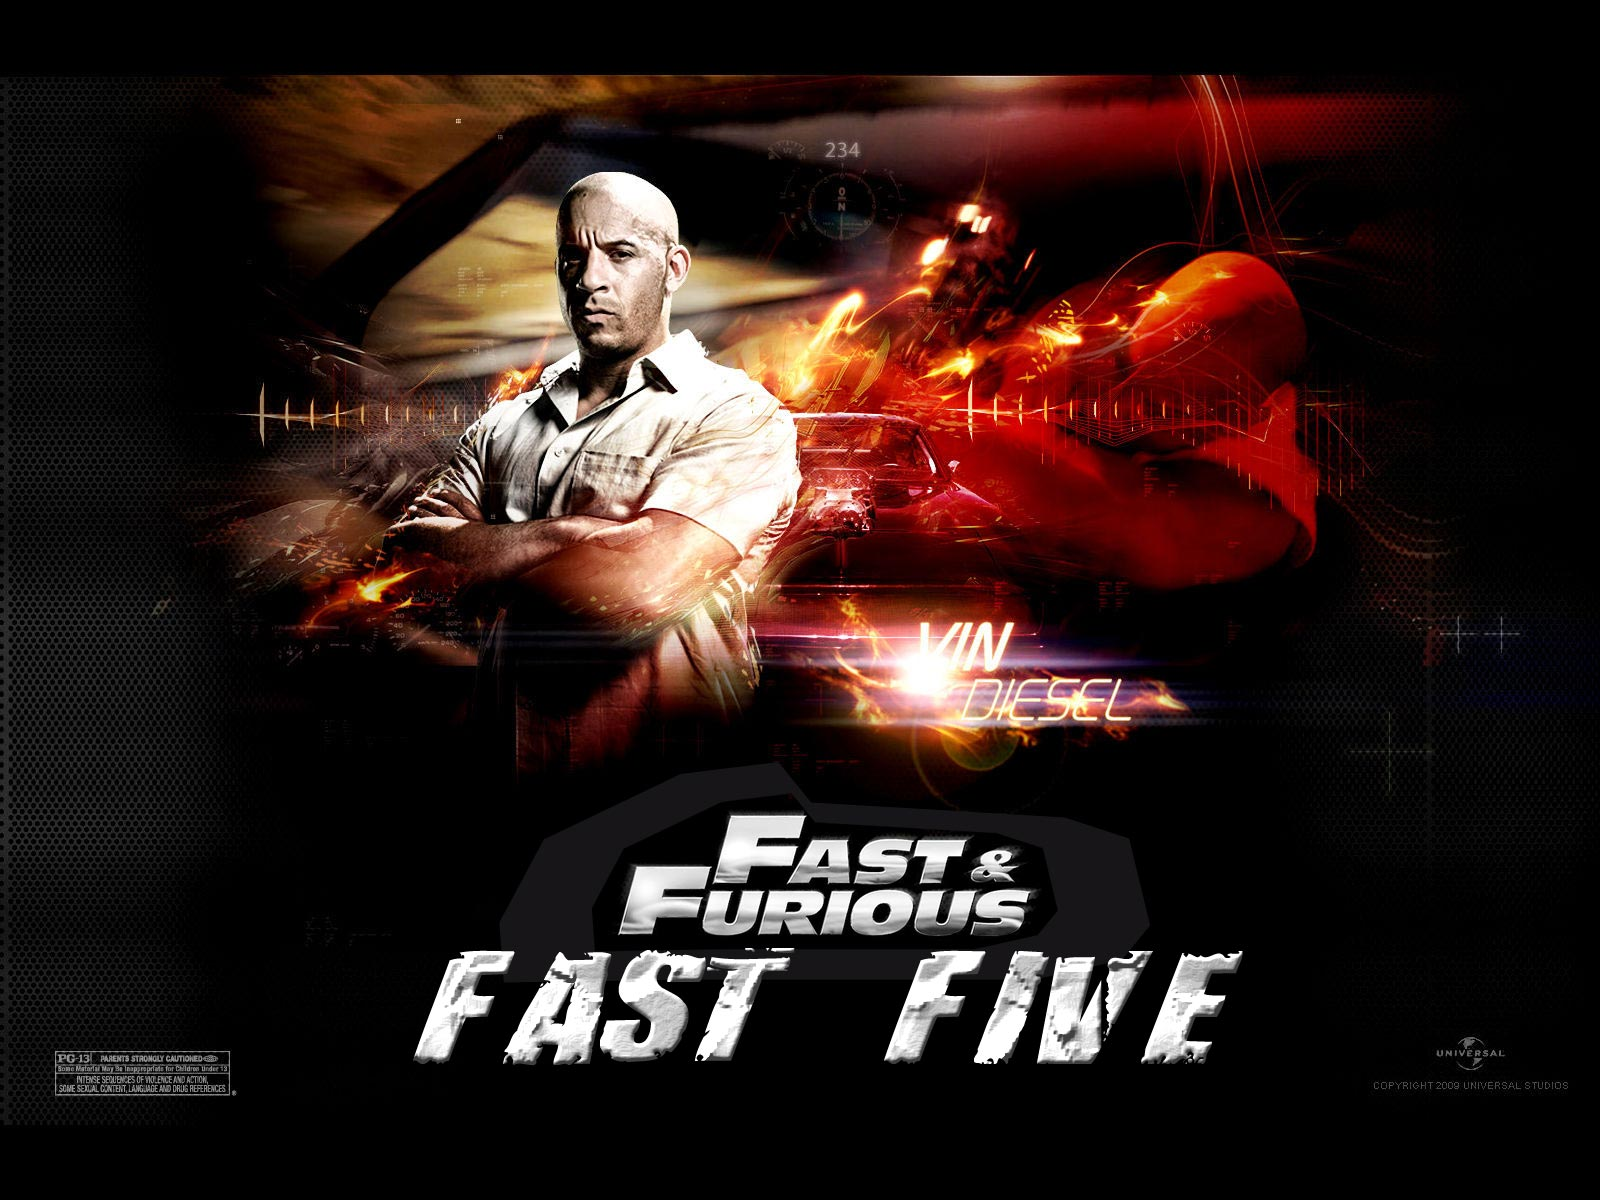 http://1.bp.blogspot.com/-41ZOCItCj74/TbP3TRNkhhI/AAAAAAAAAG0/khgAc4mPyIo/s1600/fast_and_furious_5_fast_five_wallpaper.jpg